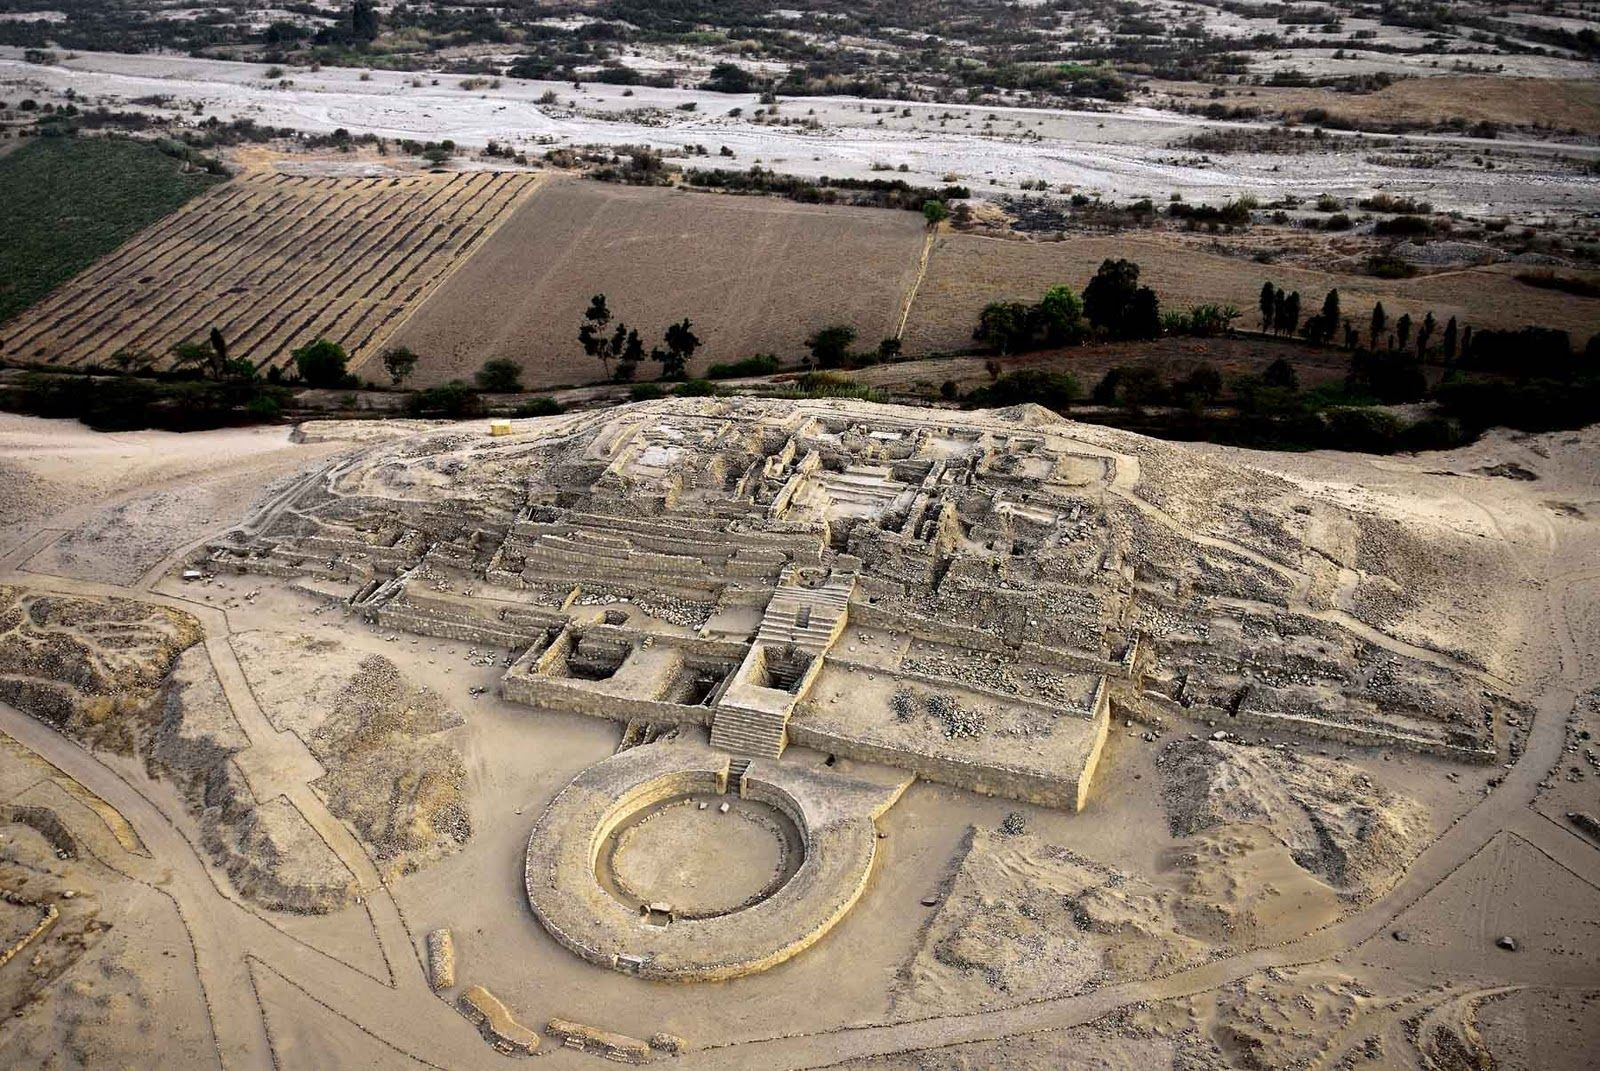 Caral Supe Represents The Oldest Civilization In America